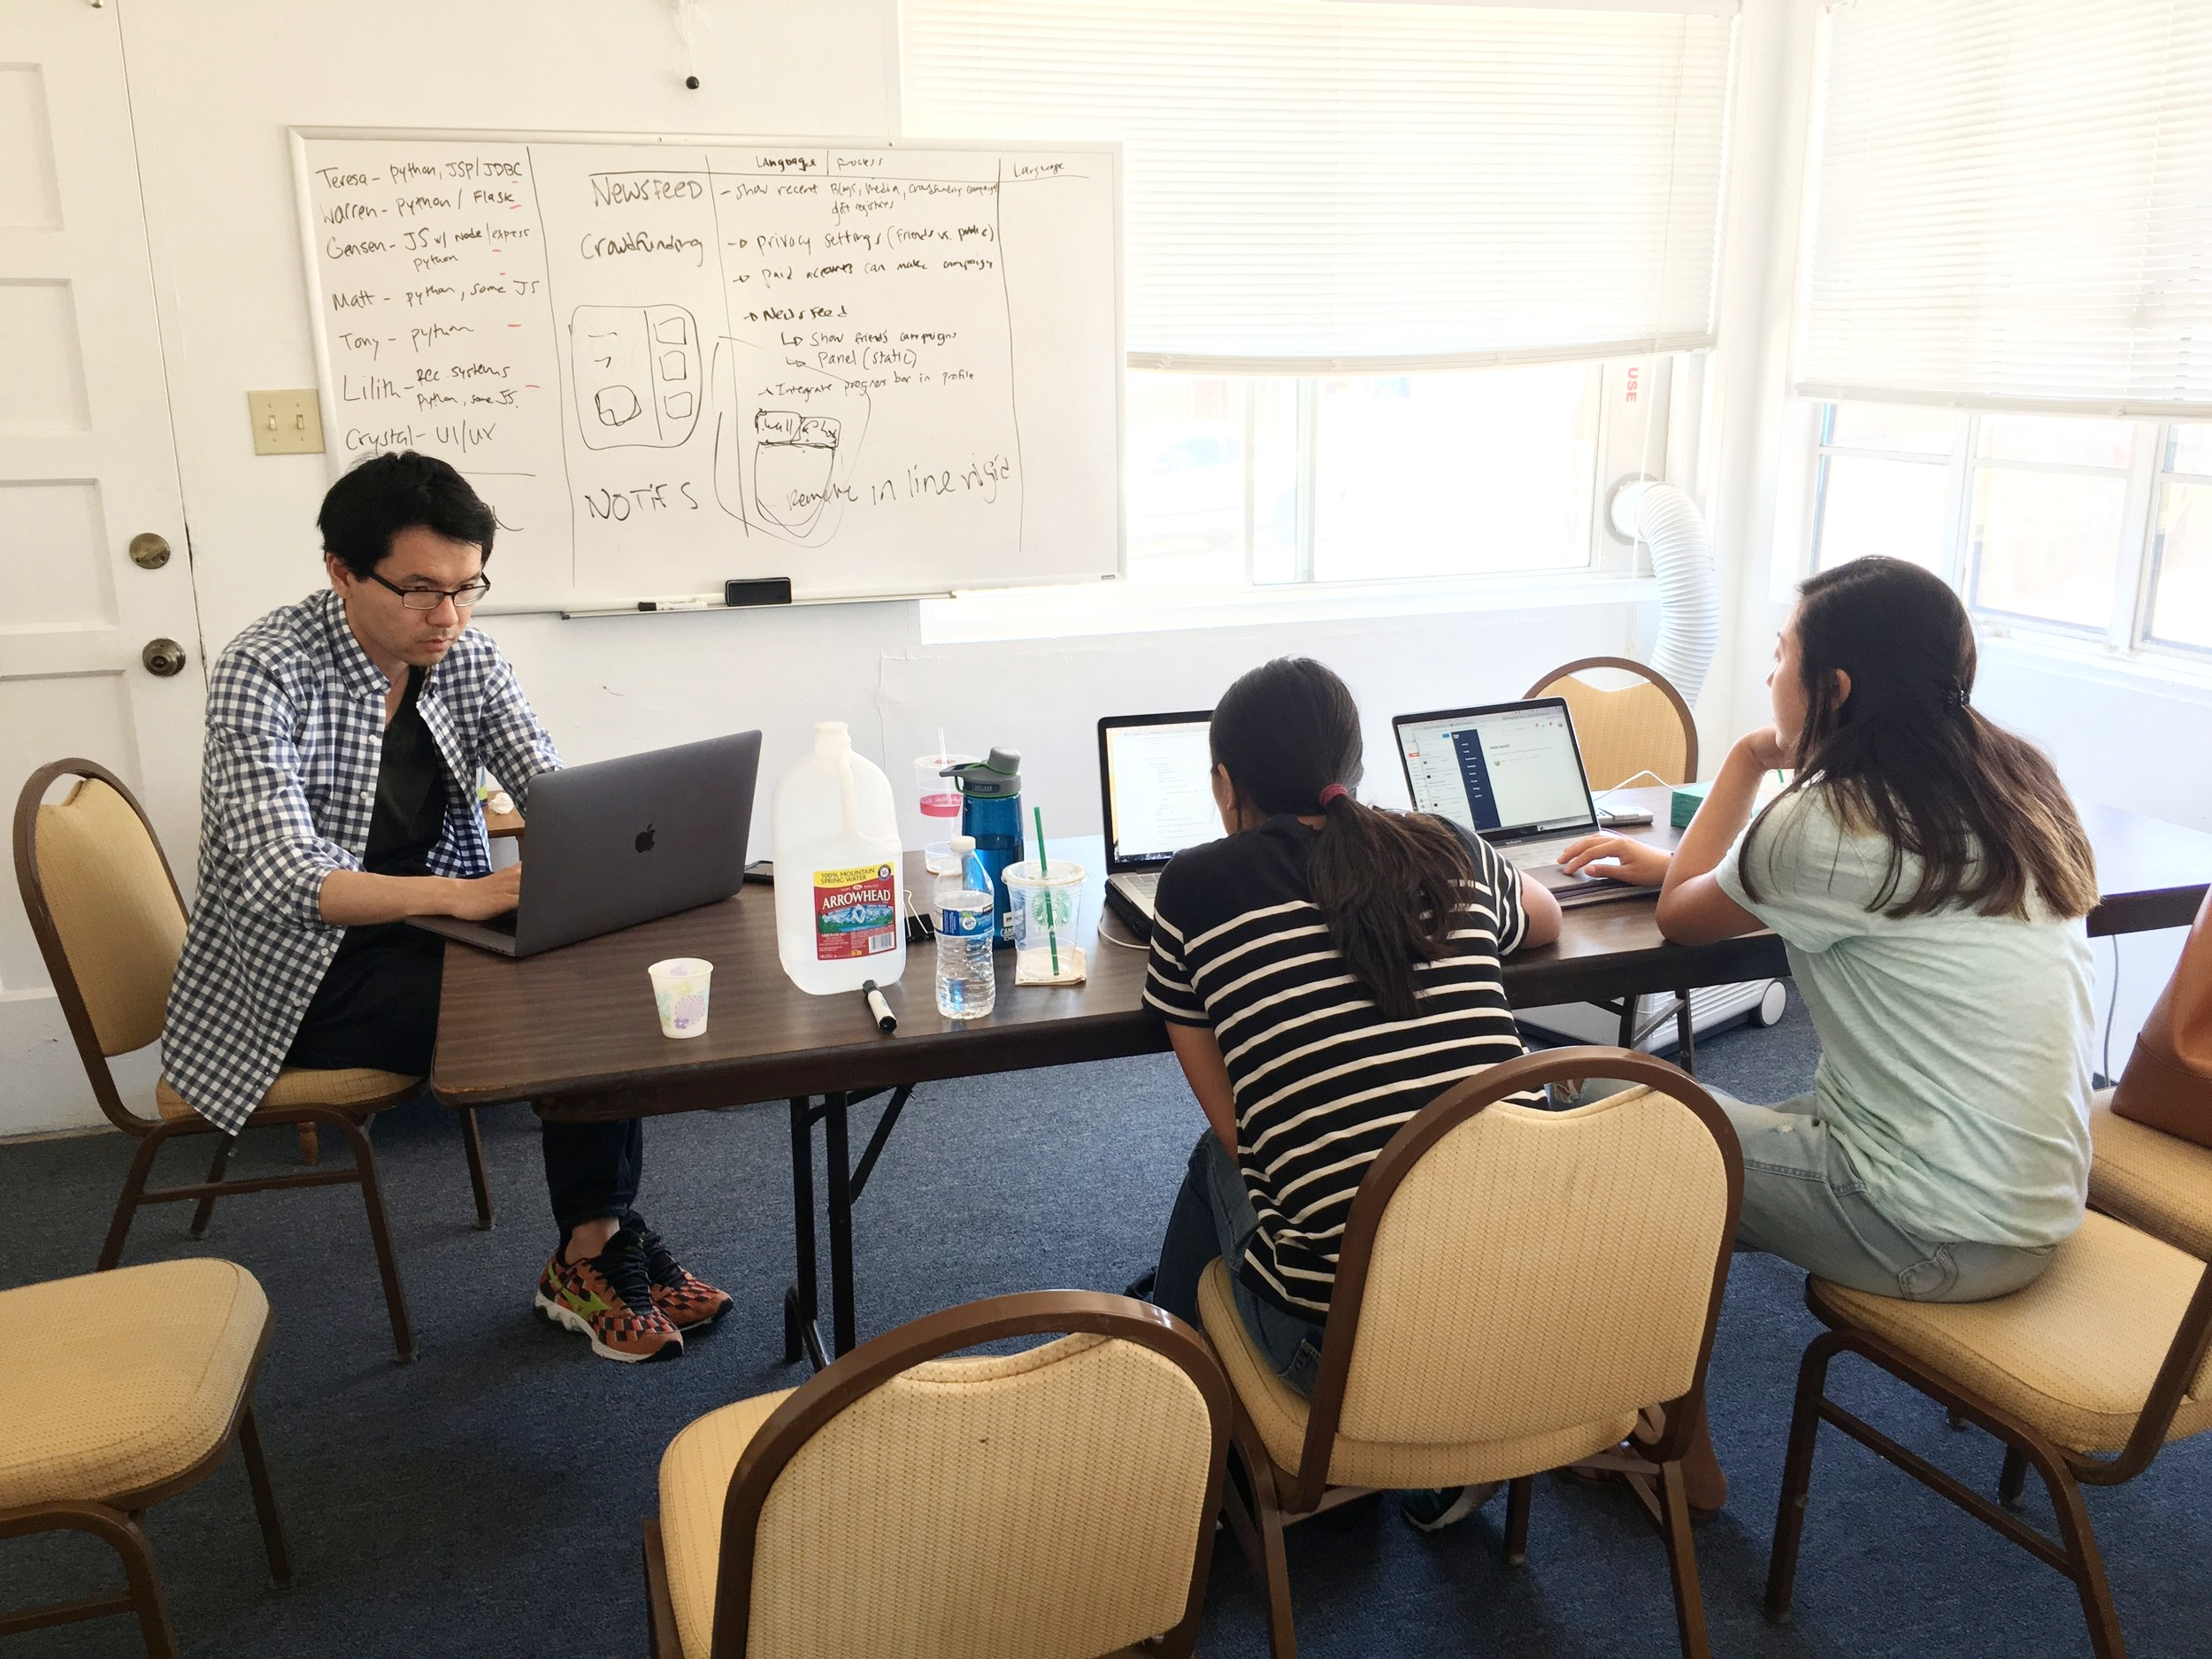 Half of our web team! From left to right: Tony Zhang, Lilith Huang, & Teresa Yuan